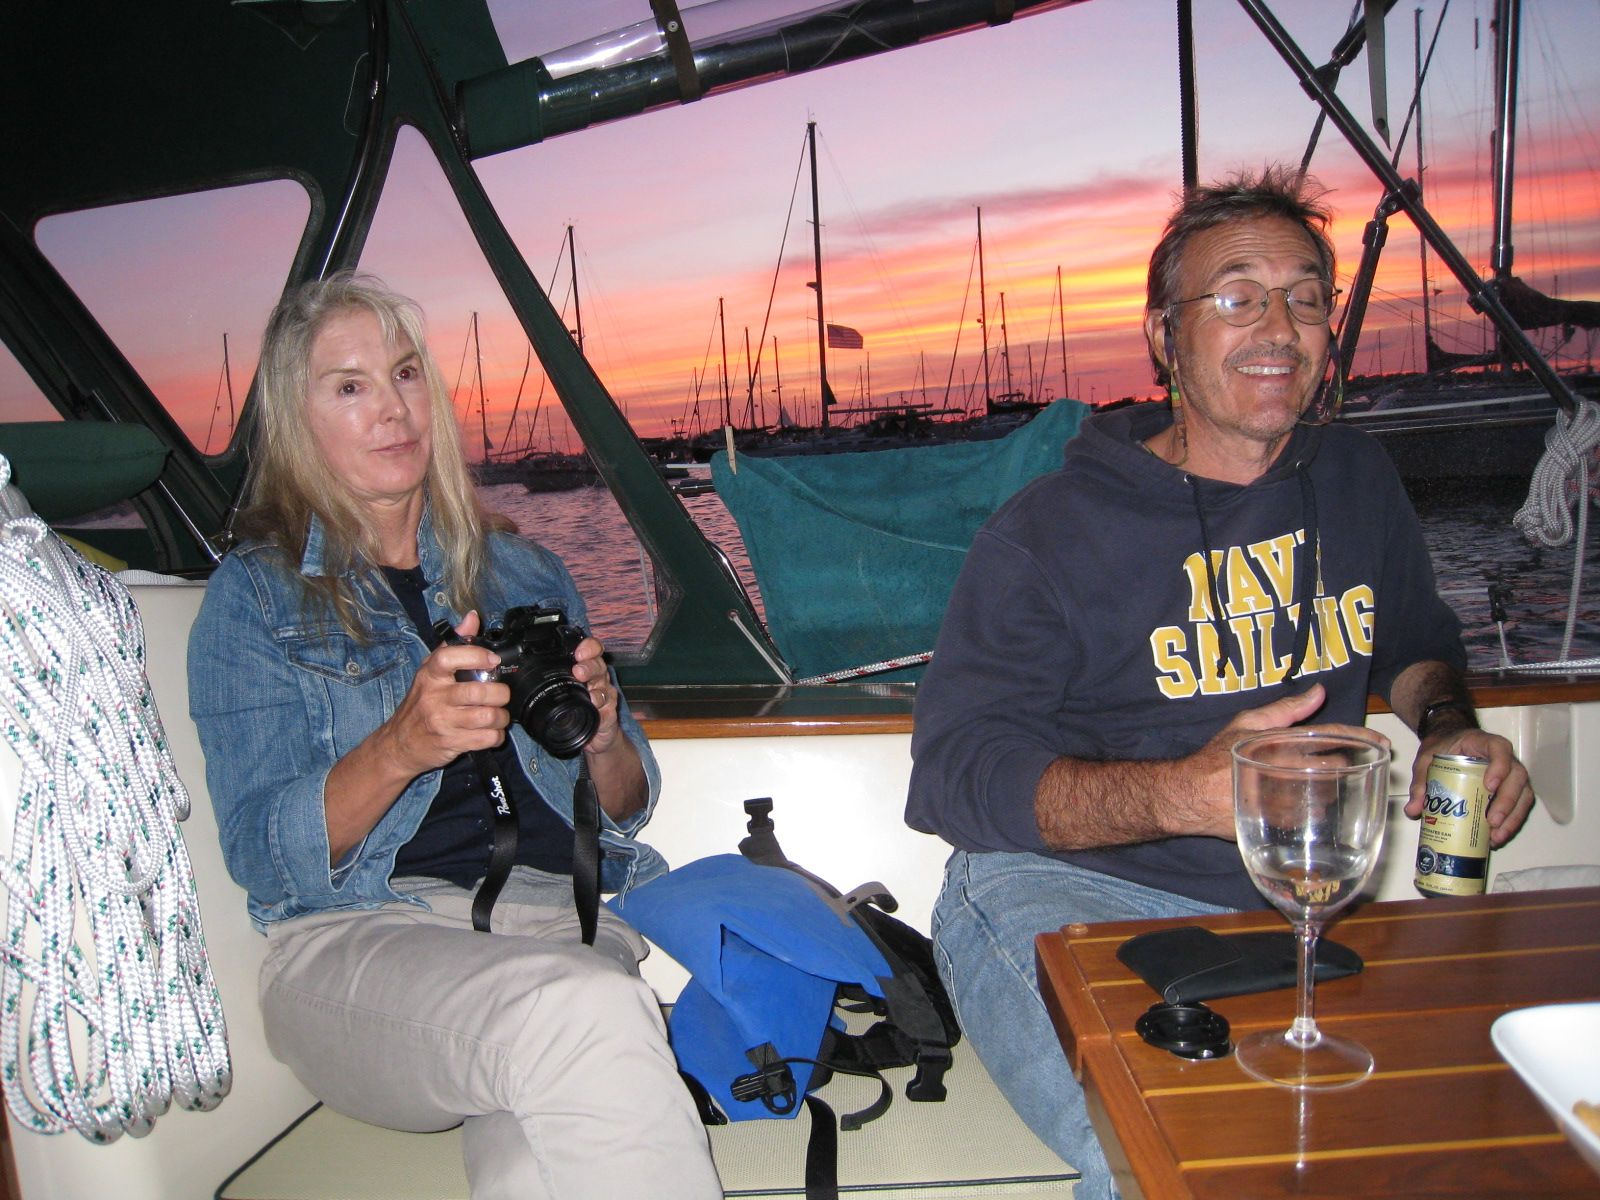 There were several Island Packets and we anchored by s/v Simple Life, ...